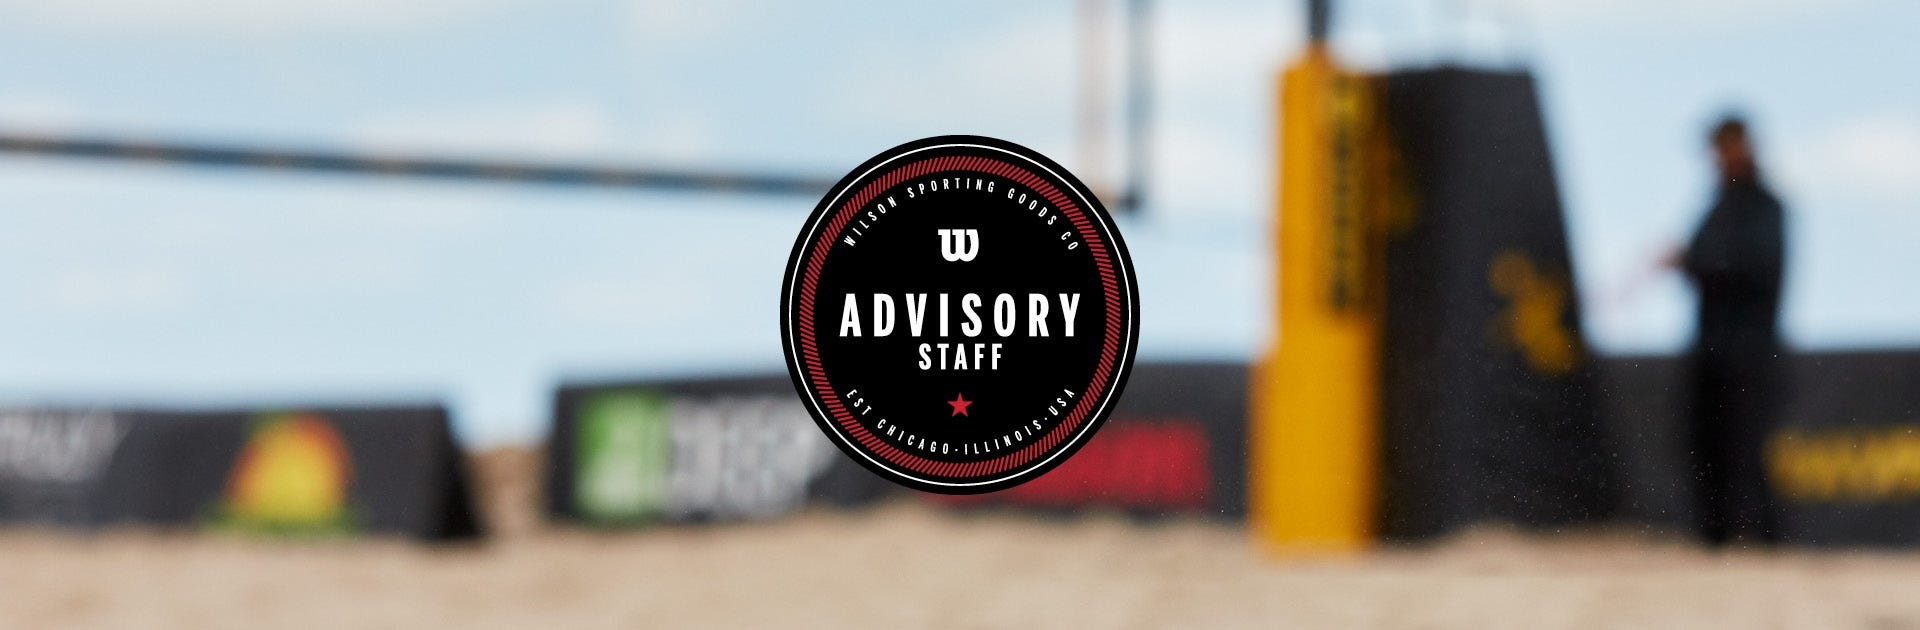 Wilson Beach Volleyball Advisory Staff